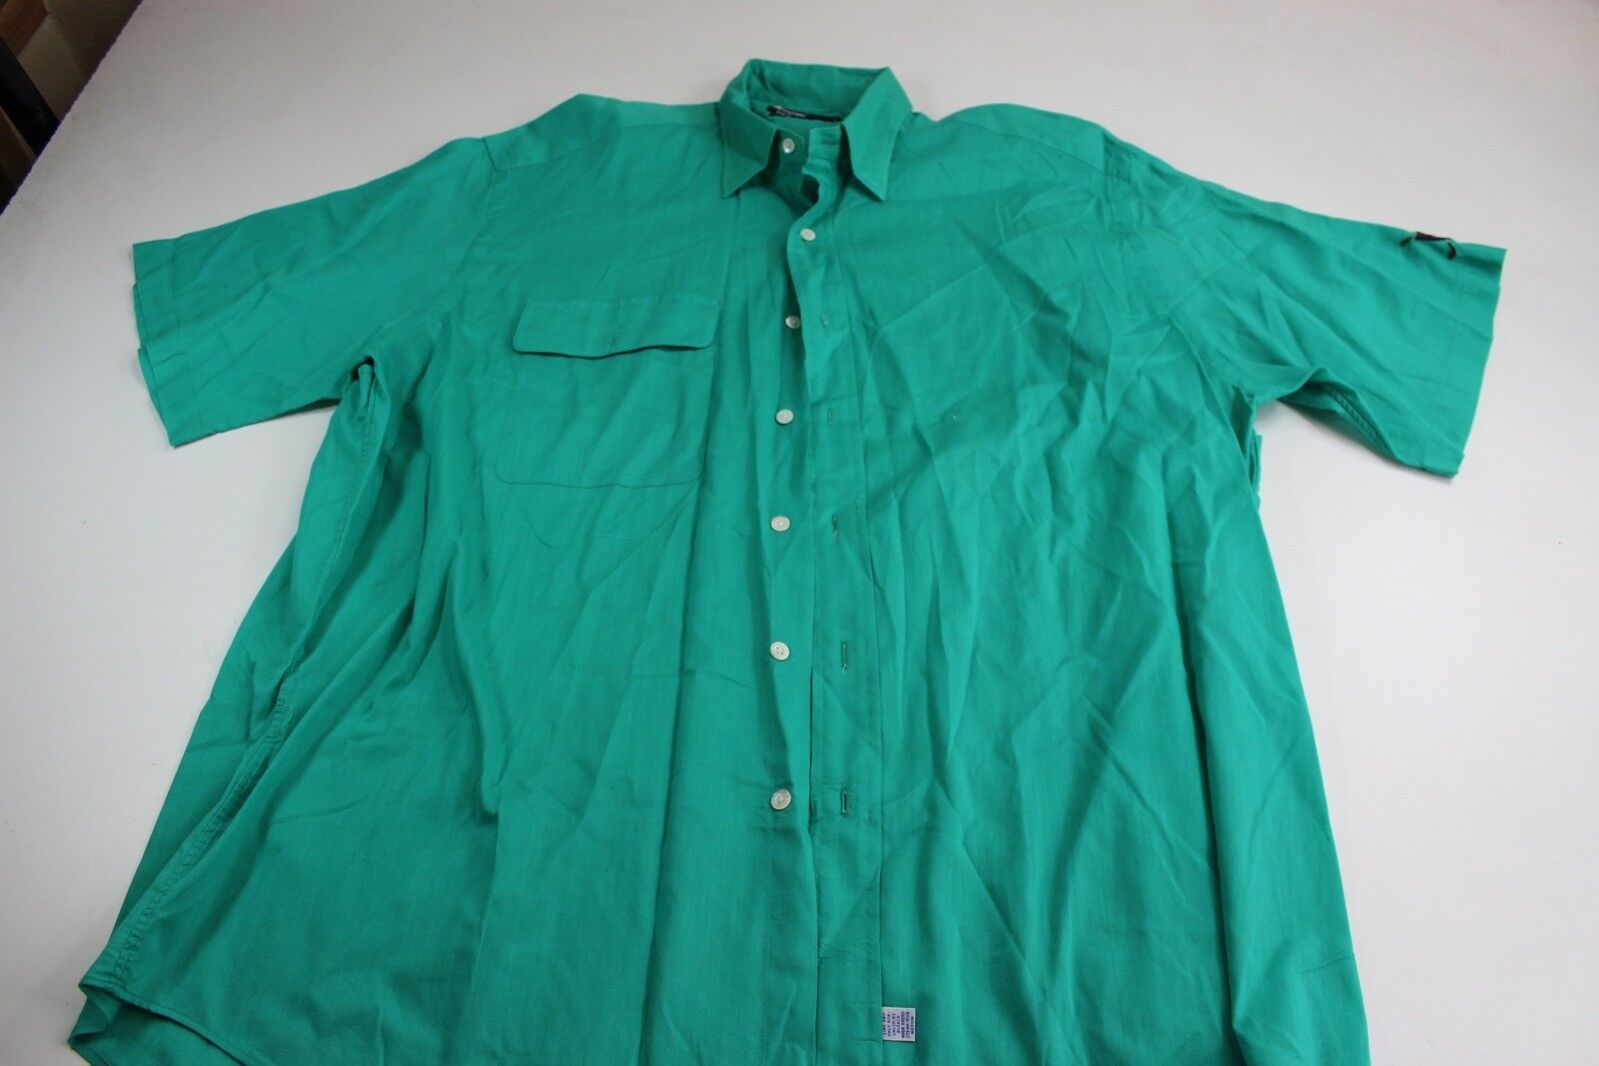 VTG 80's 90's Polo Ralph Lauren Happy Green Butto… - image 1